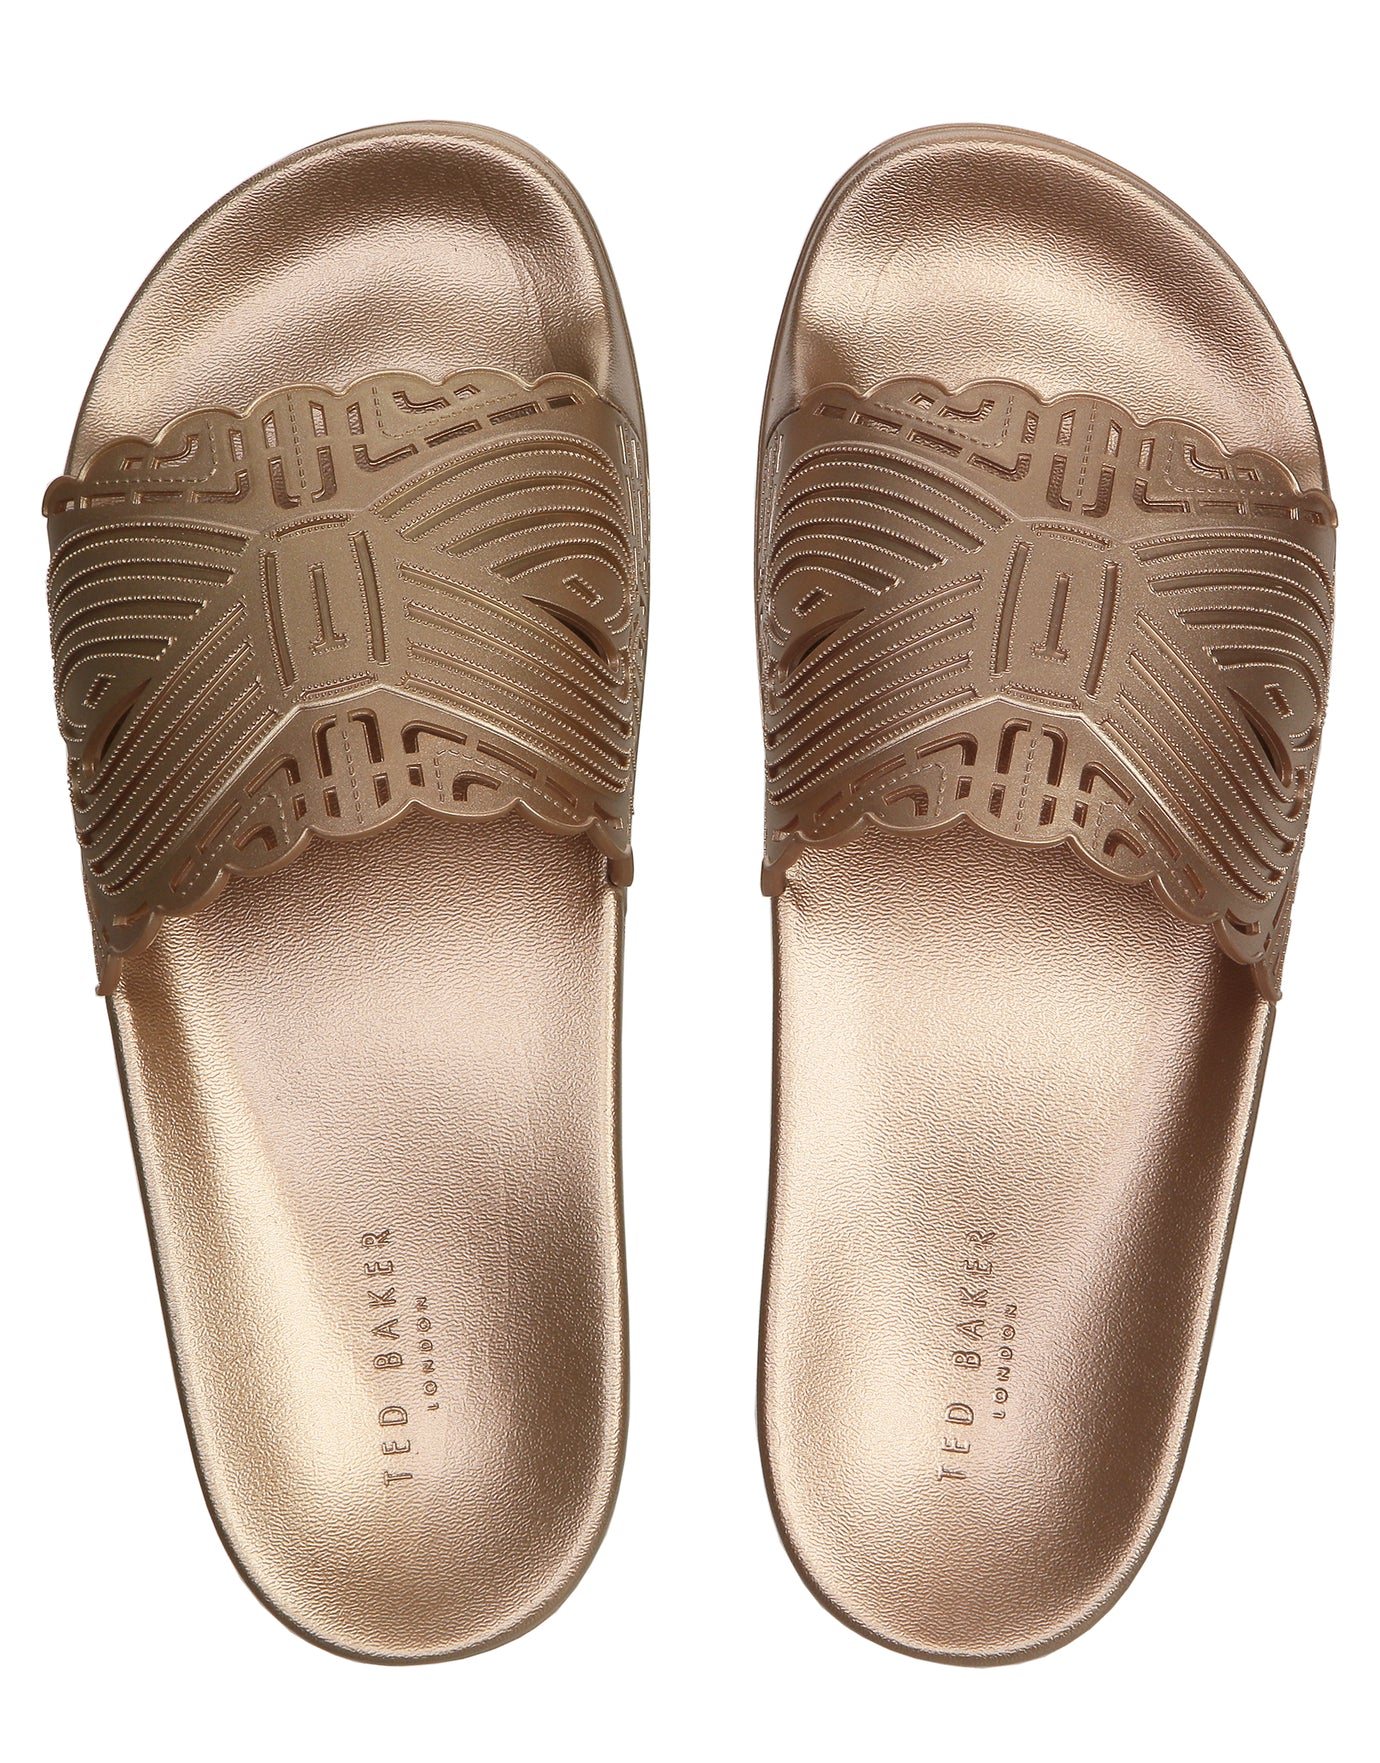 Ted Baker Missley Sliders - Rose Gold